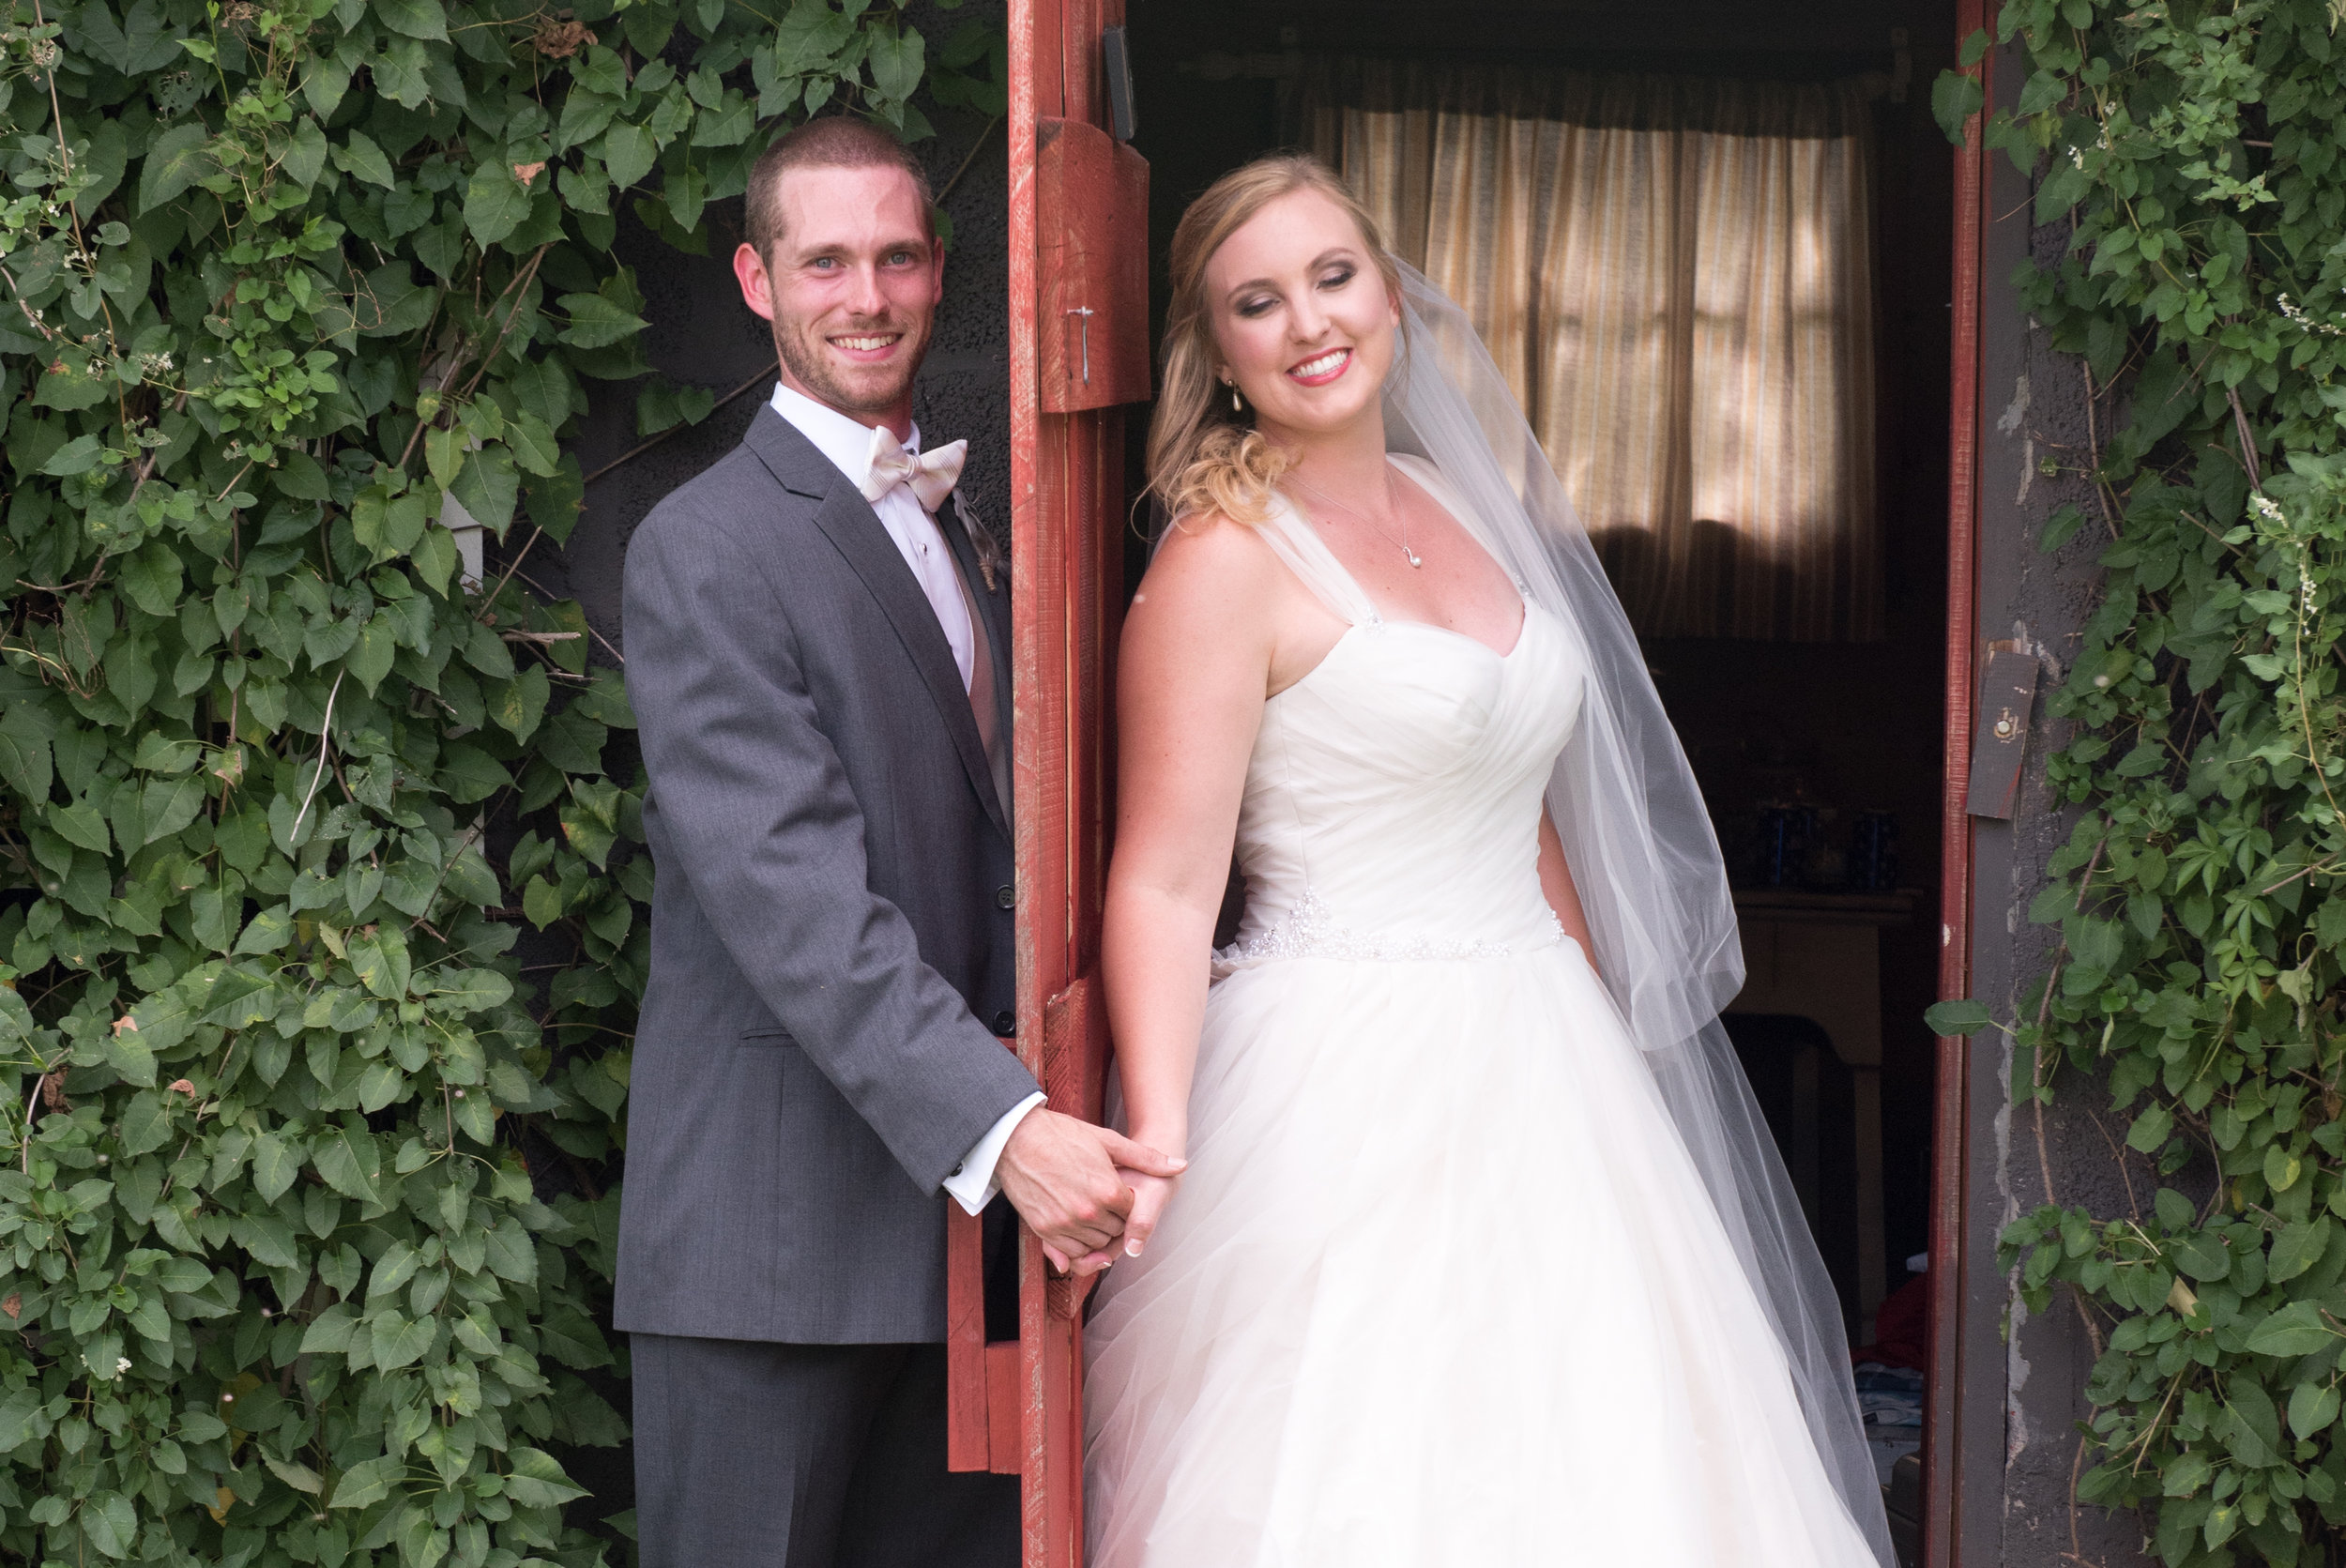 First Look with a door between them. The groom did not want to see his bride before the wedding. But just holding hands and hearing one another's voice can be calming.